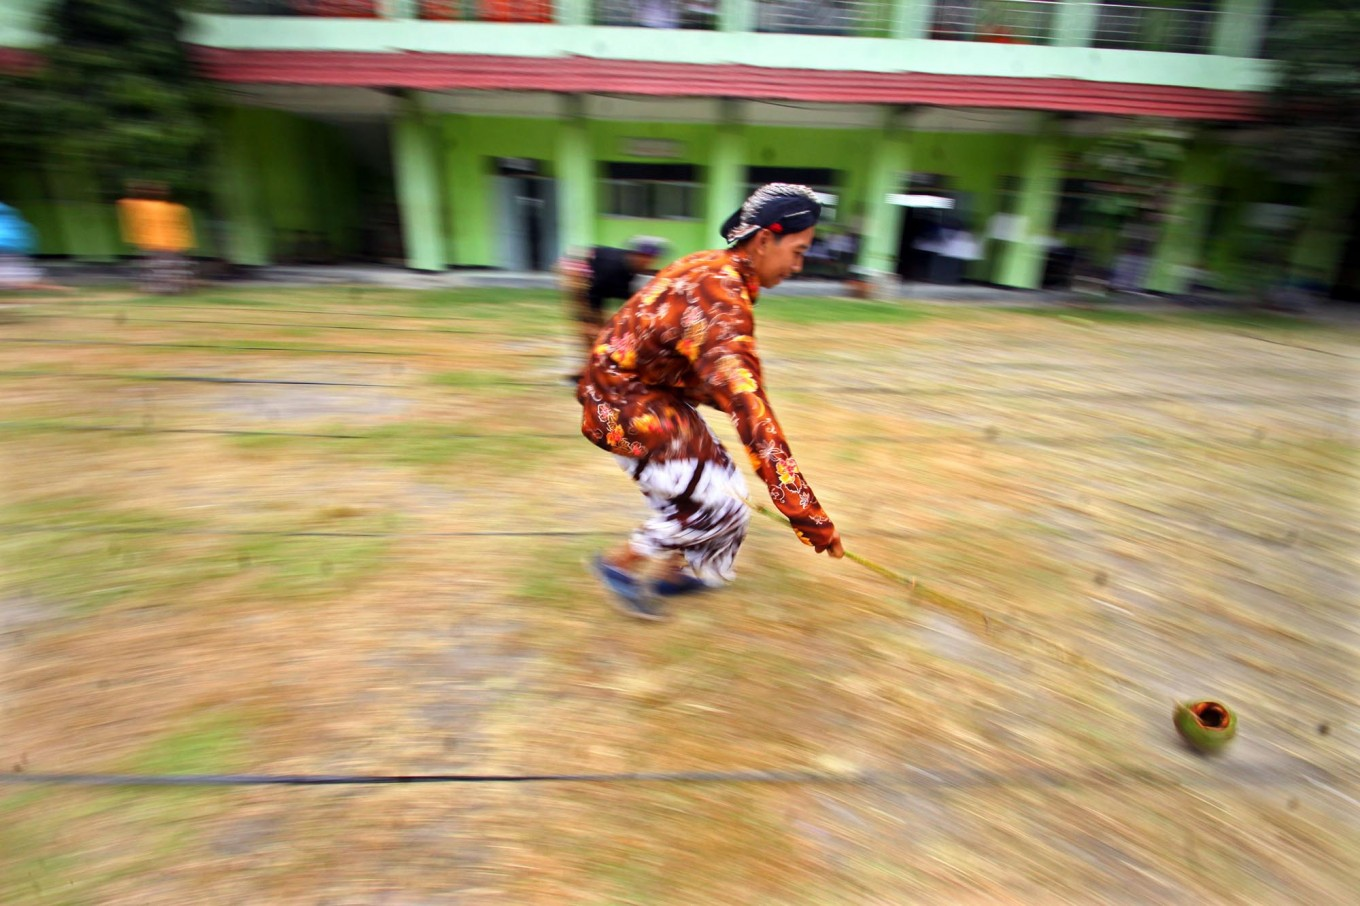 A new student of SMK 1 Pundong state vocational high school in Bantul regency, Yogyakarta, runs during the cengkir (coconut shell) race during the school orientation program on Wednesday, July 19, 2017. JP/Aditya Sagita